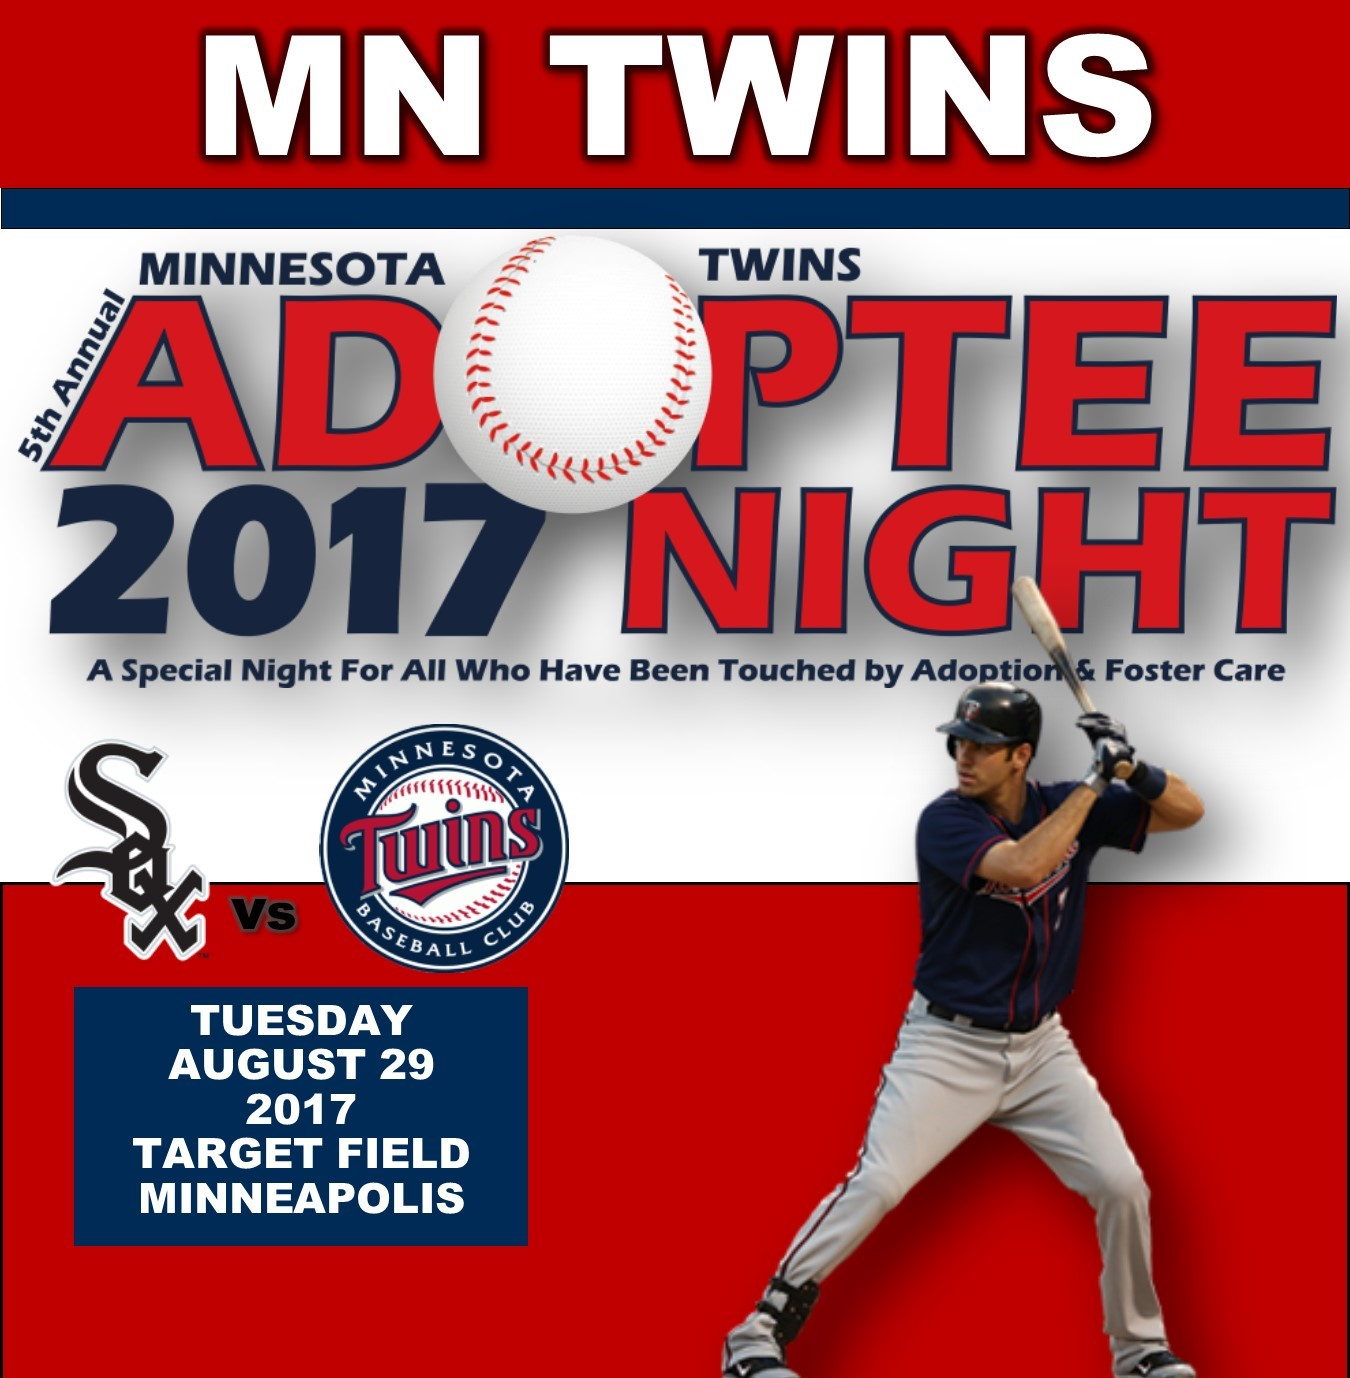 5TH ANNUAL MN TWINS ADOPTEE NIGHT 2017 Photo